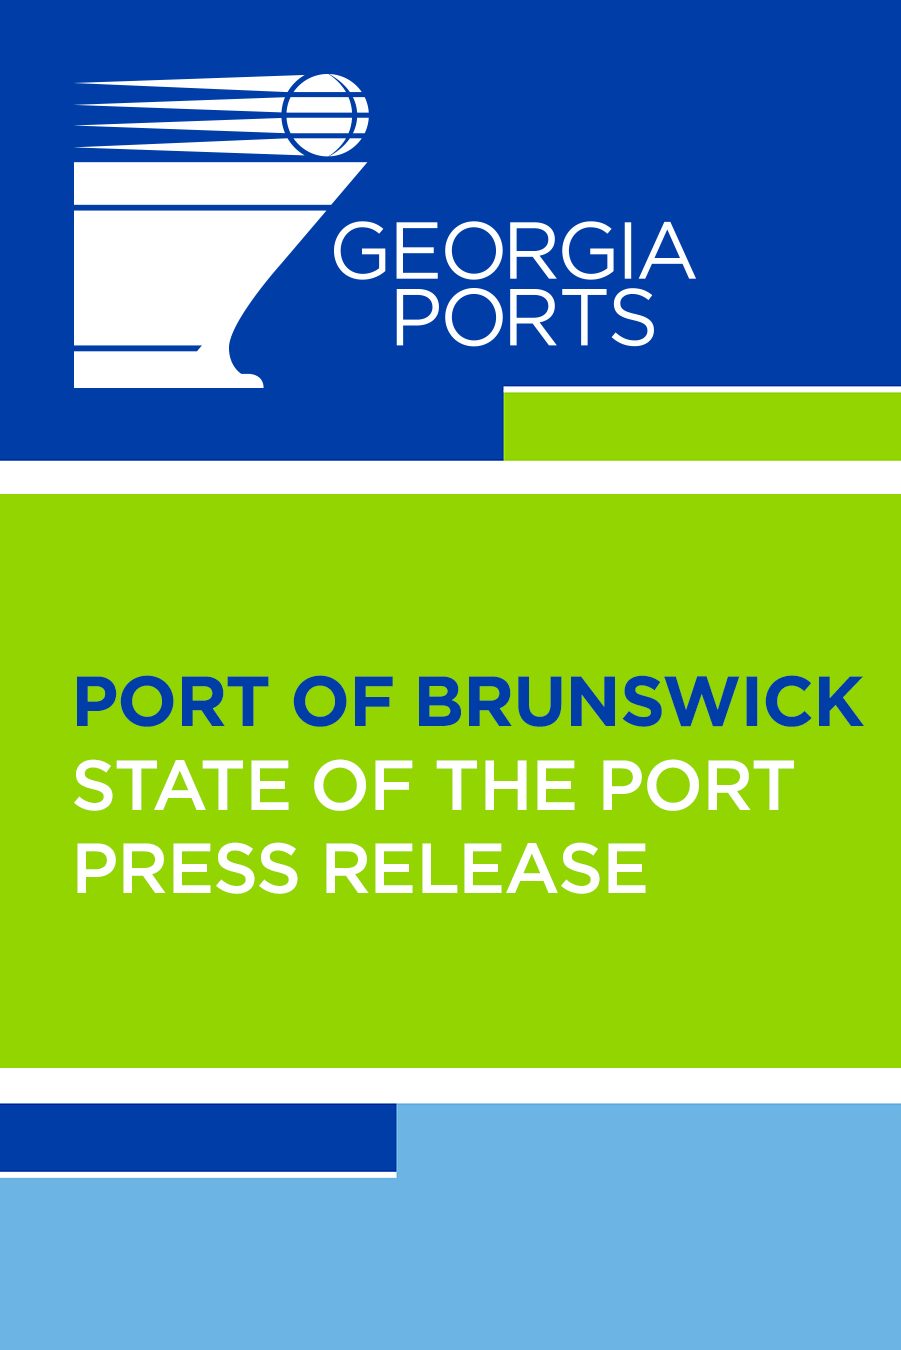 CLICK TO DOWNLOAD   2019 Georgia Ports State of the Port Press Release - Brunswick (PDF - 1.3MB)